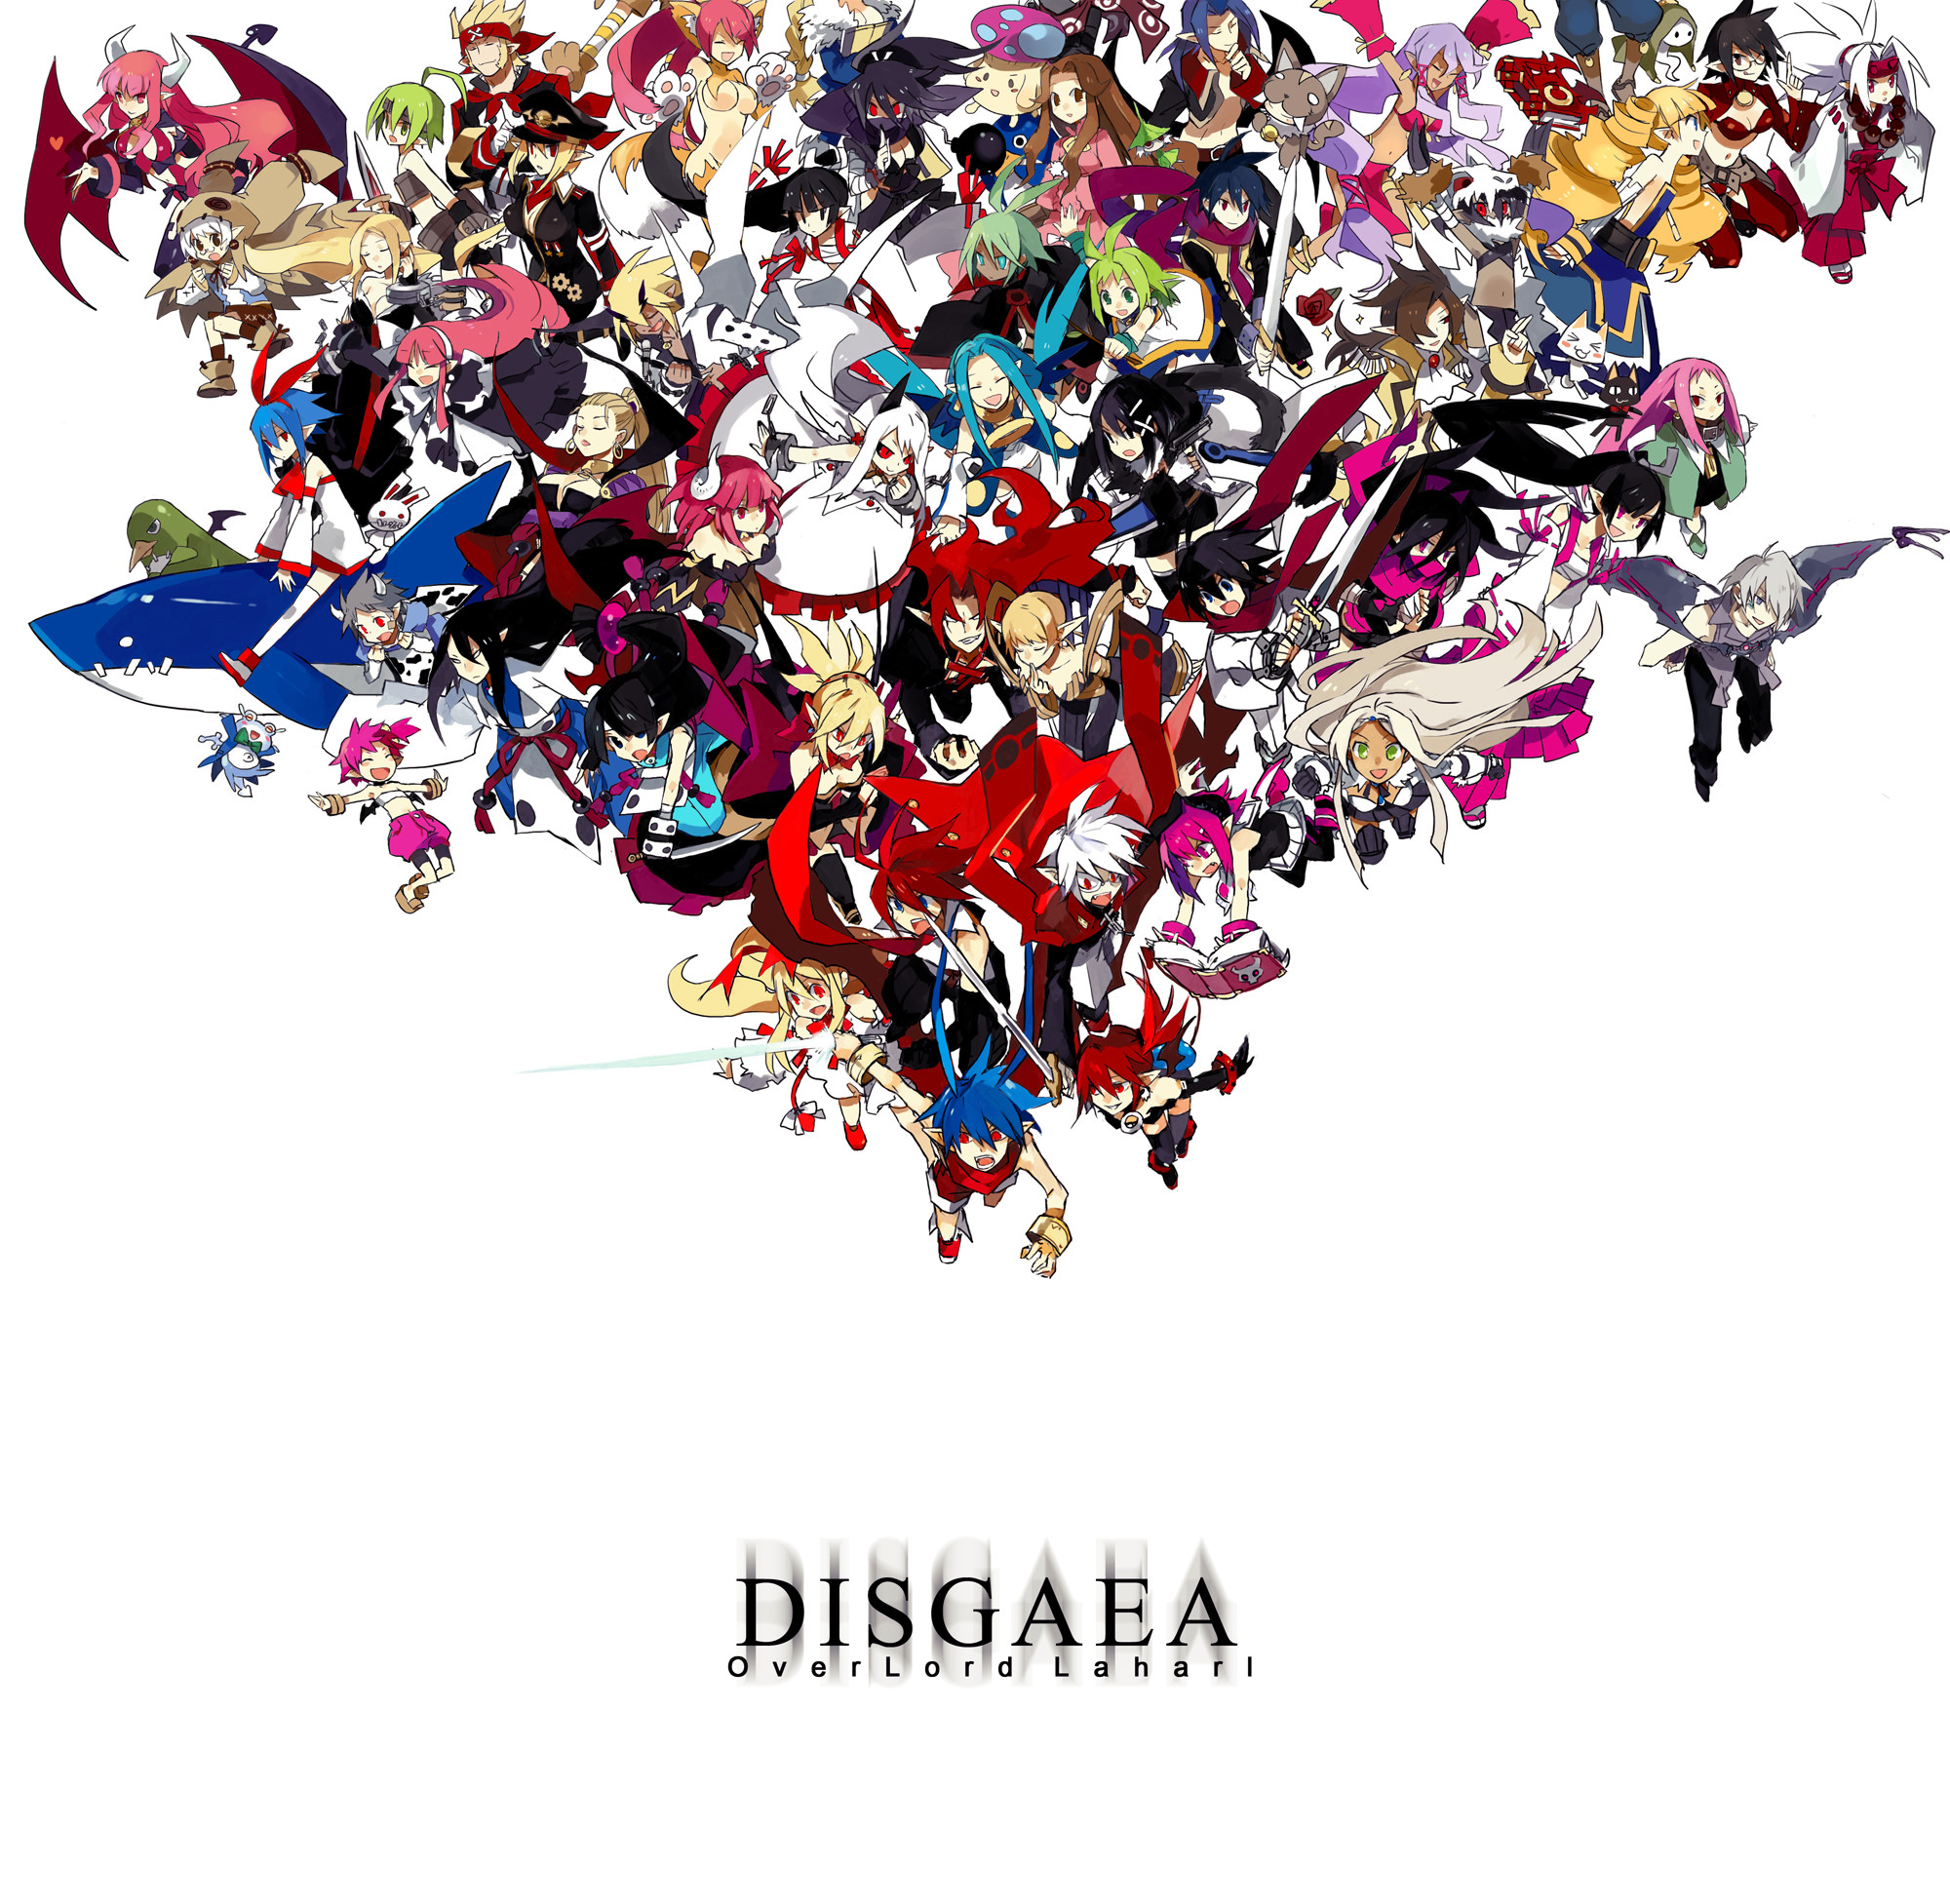 Res: 2000x1953, Netherworld Battle Chronicle Disgaea · download Makai Senki Disgaea image